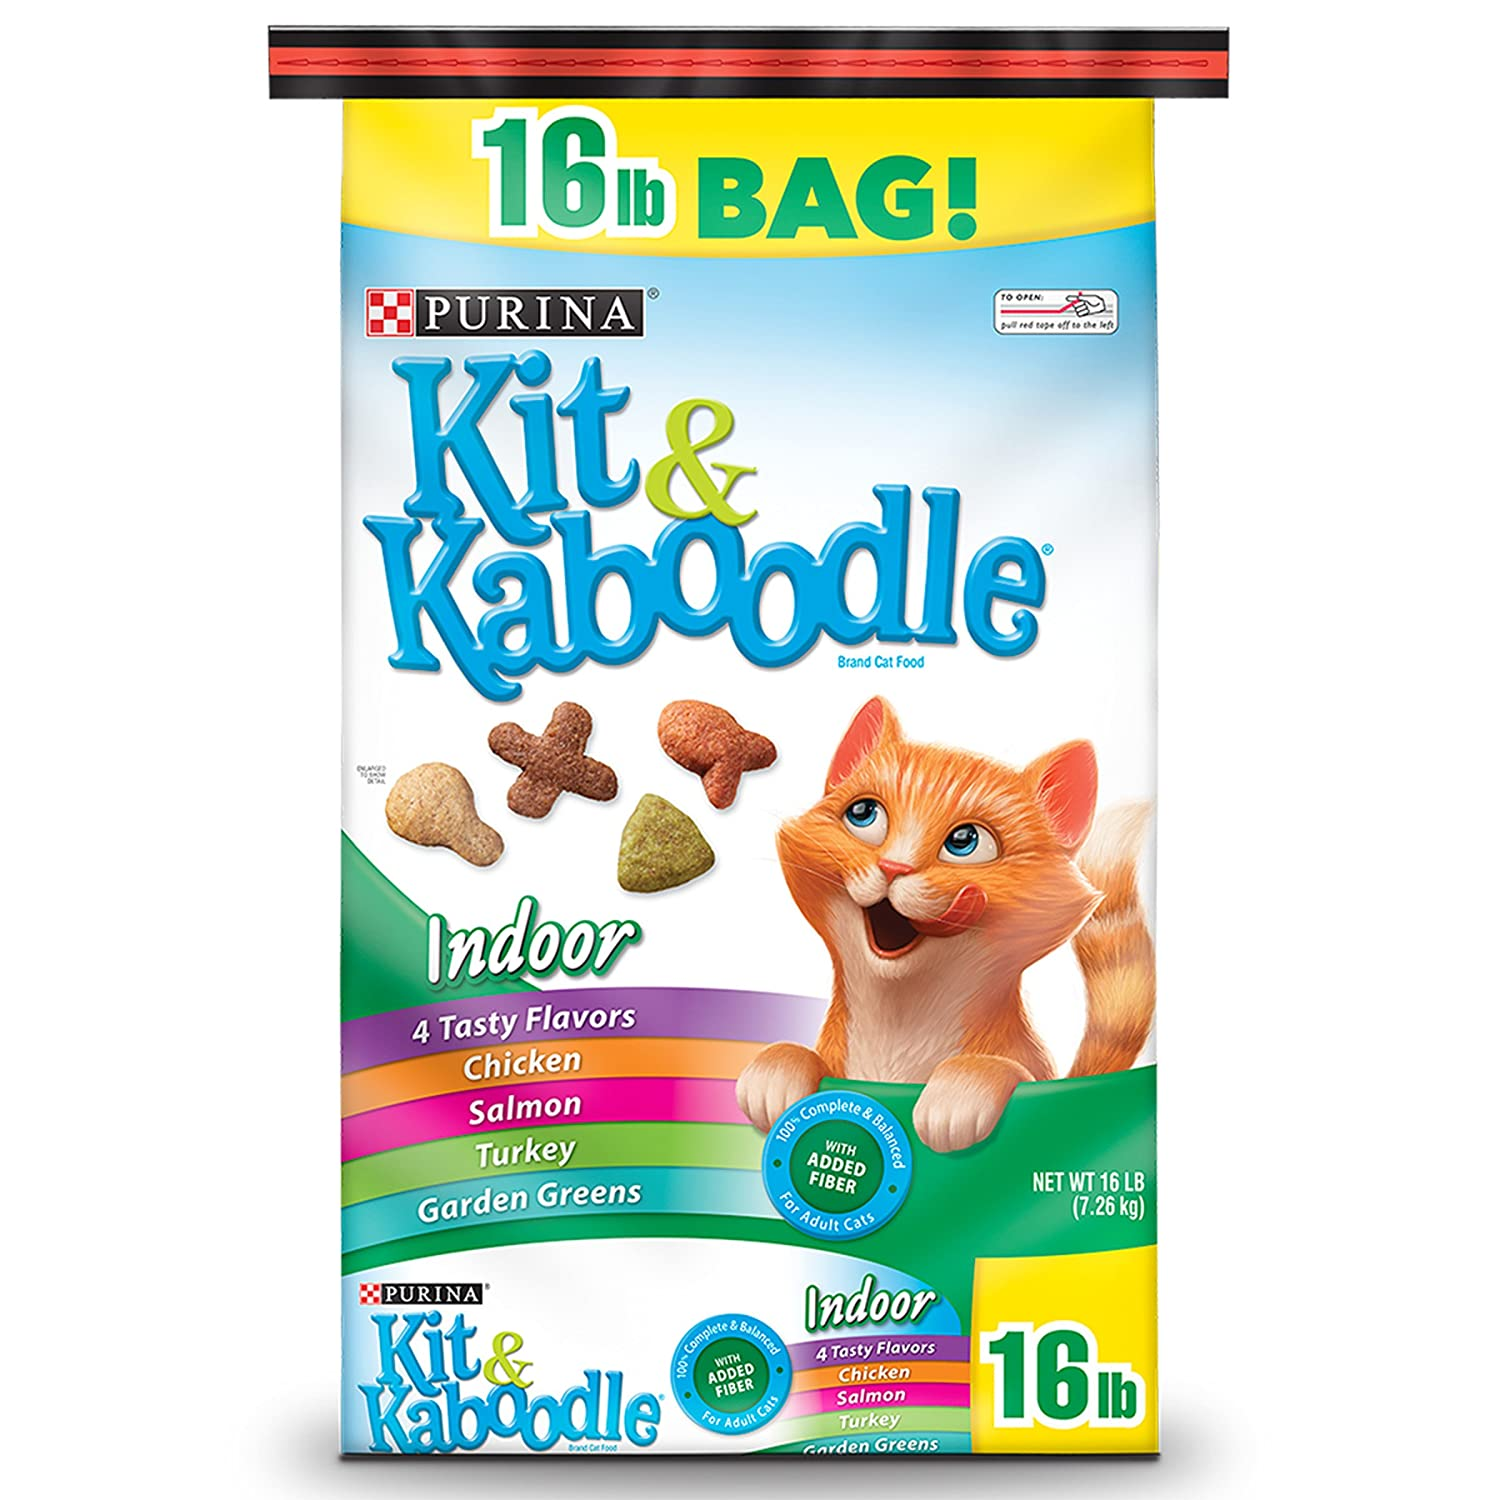 Purina Kit & Kaboodle Indoor Dry Cat Food, Indoor - 16 lb. Bag